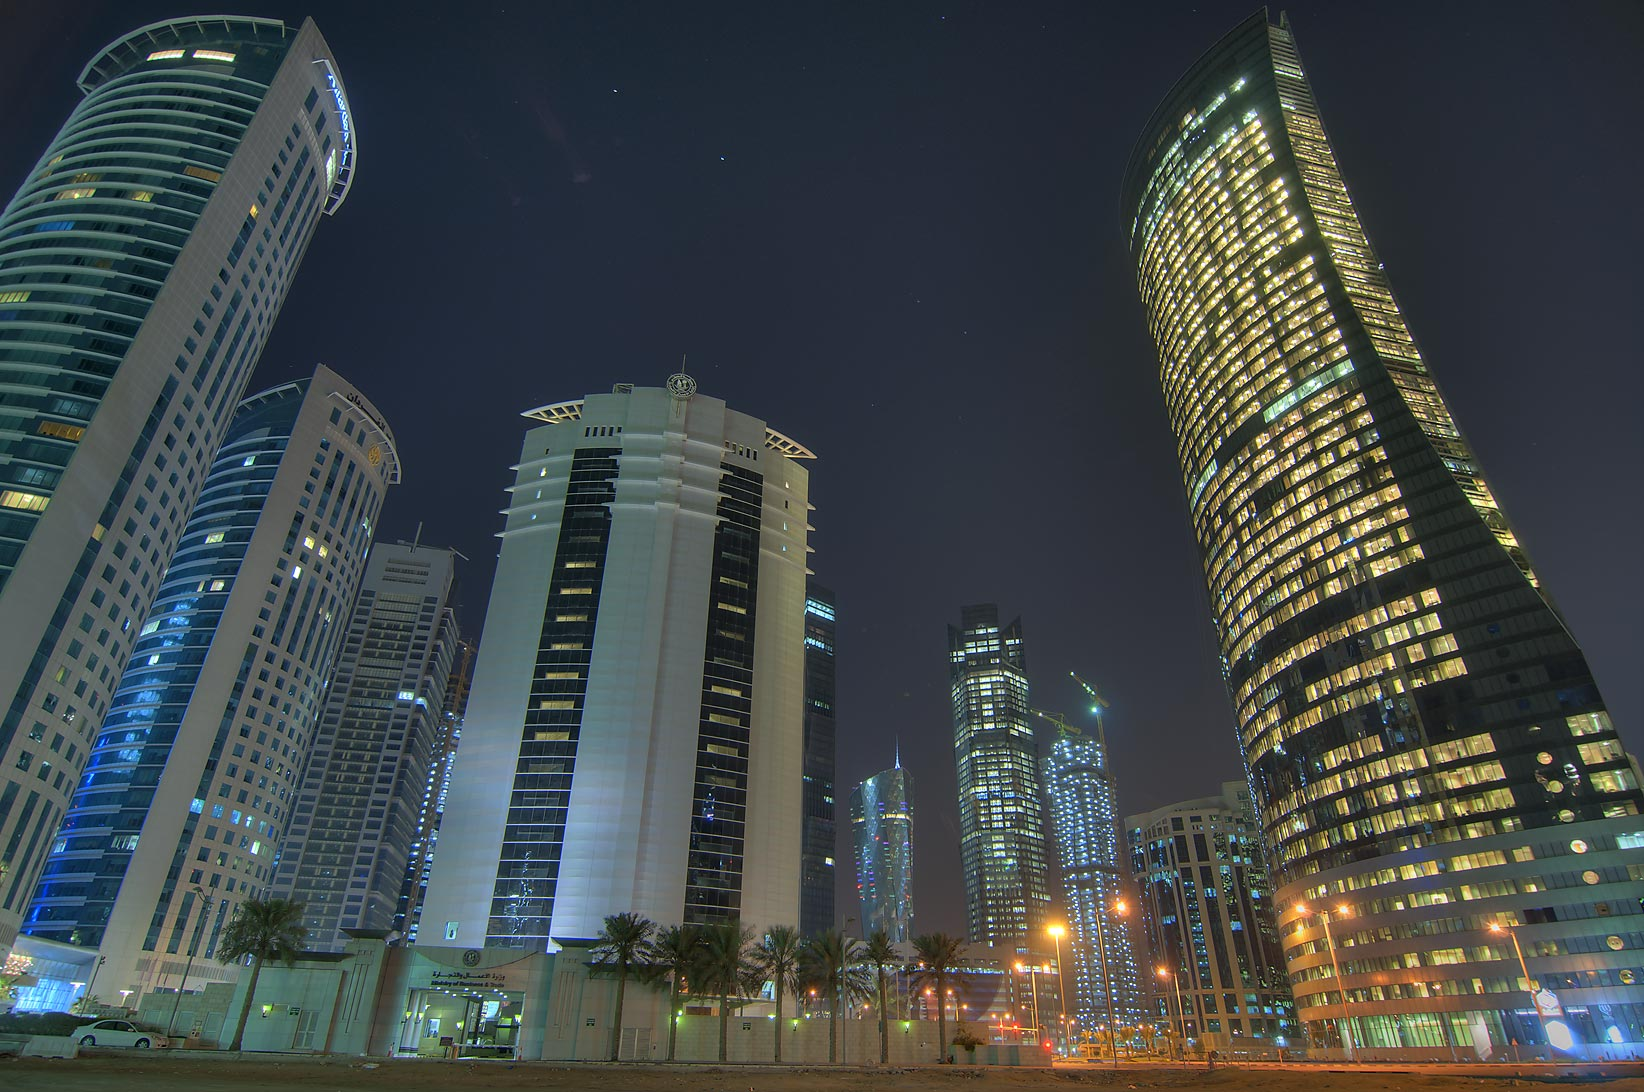 Al Fardan, Ministry of Commerce, and Navigation towers in West Bay. Doha, Qatar